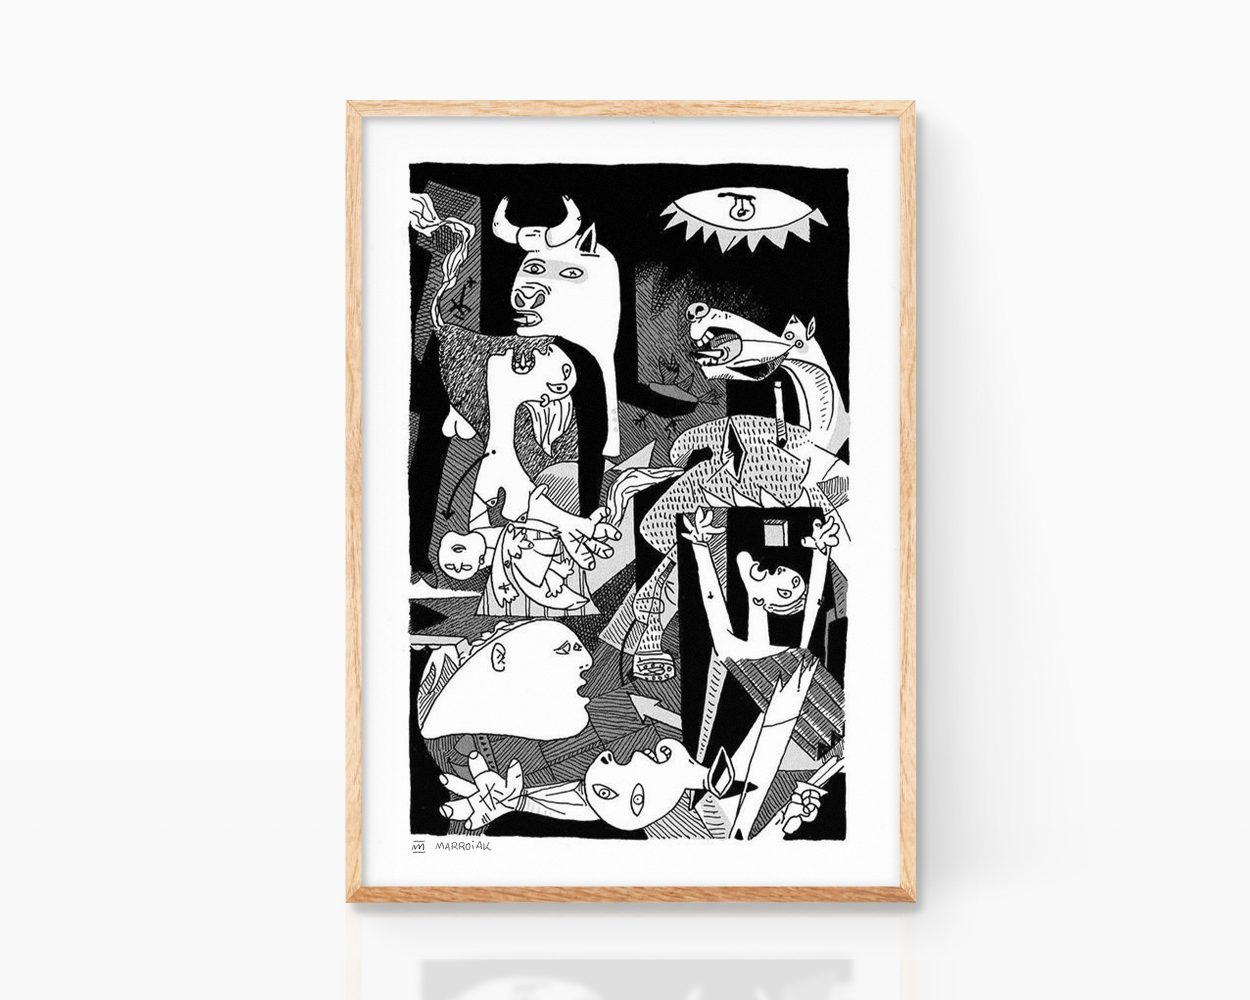 Plate with an illustration of Guernica, one of Pablo Picasso's best-known works of art. Cubism poster